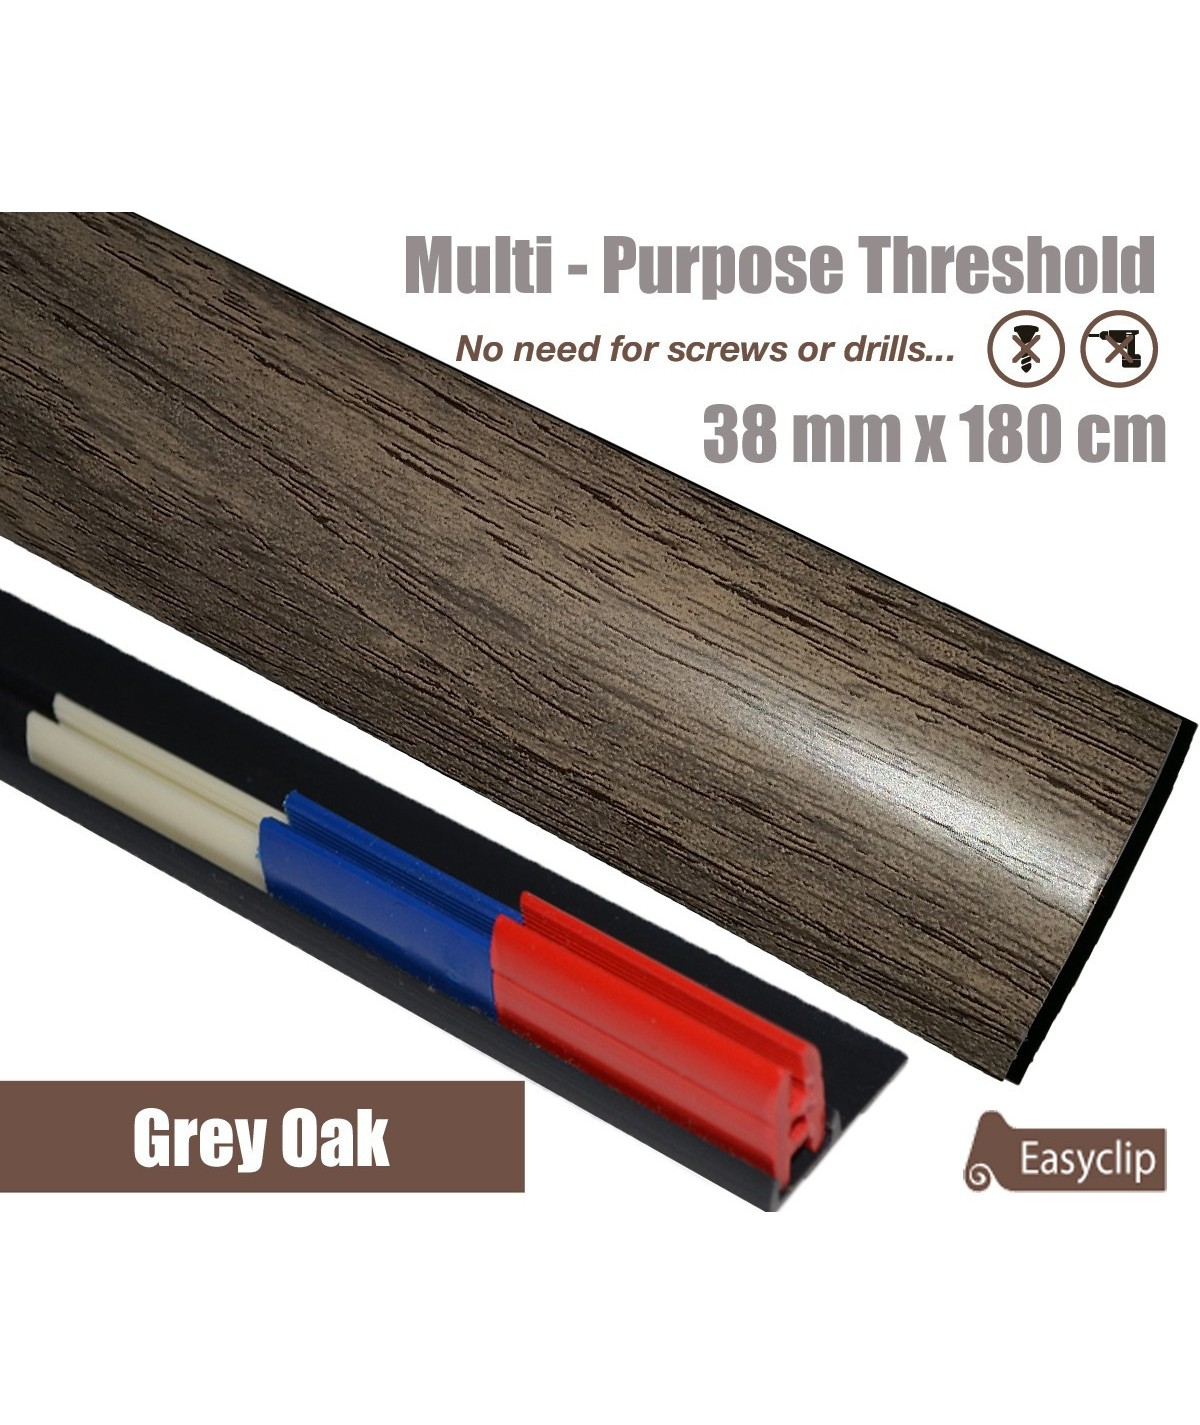 Grey Oak Threshold Strip 38mm x 180cm laminate multi Purpose Adhesive Clip System